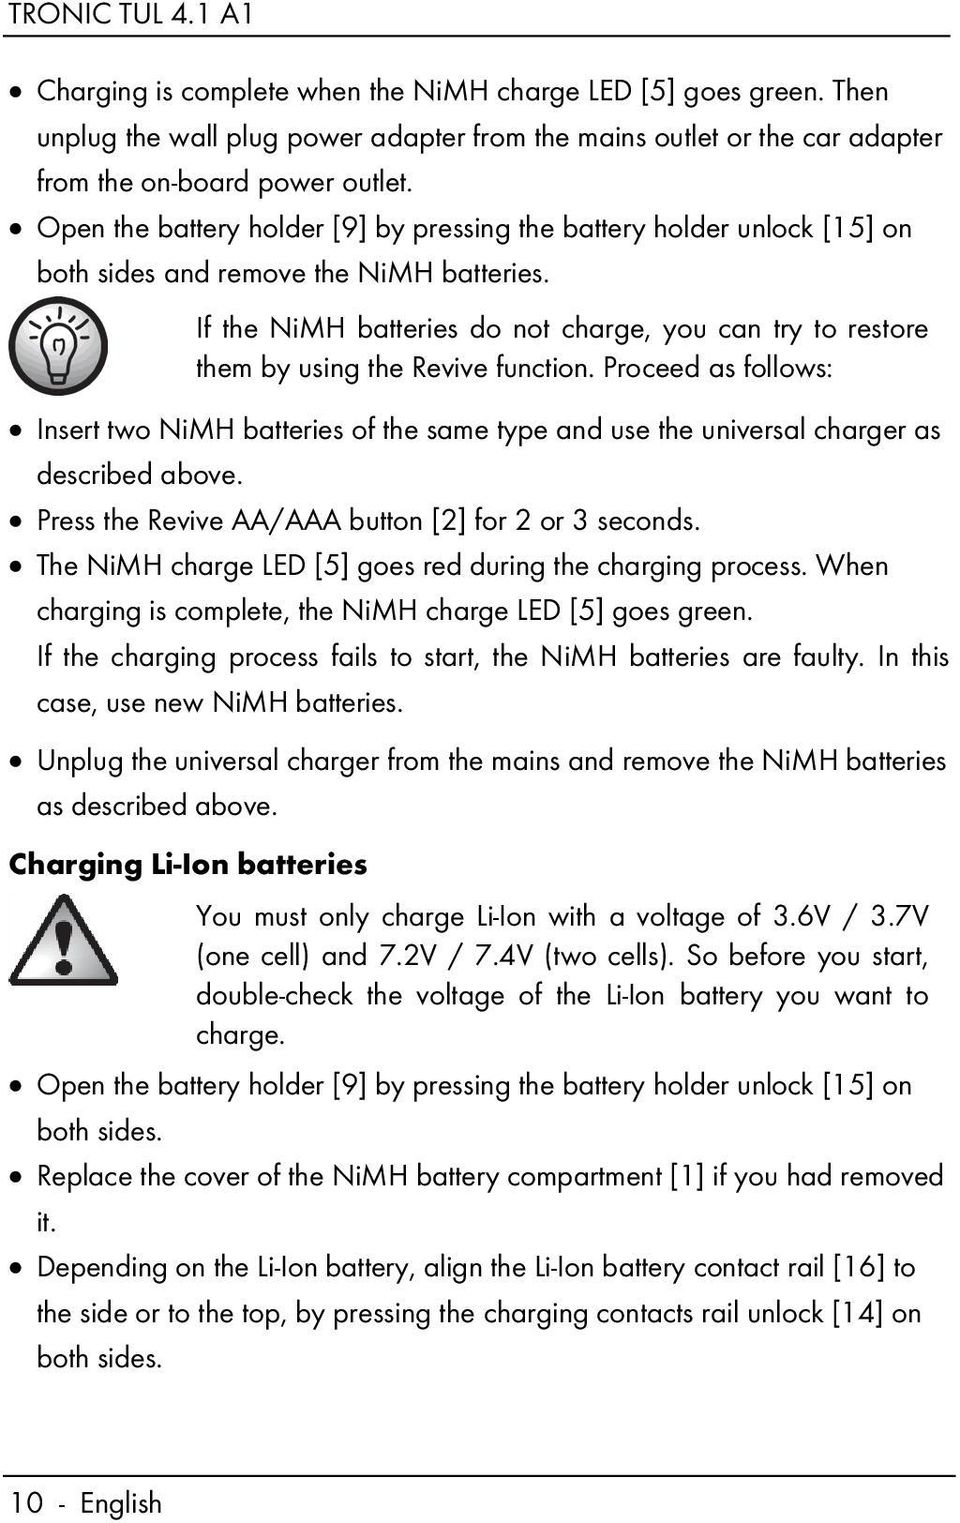 If the NiMH batteries do not charge, you can try to restore them by using the Revive function.